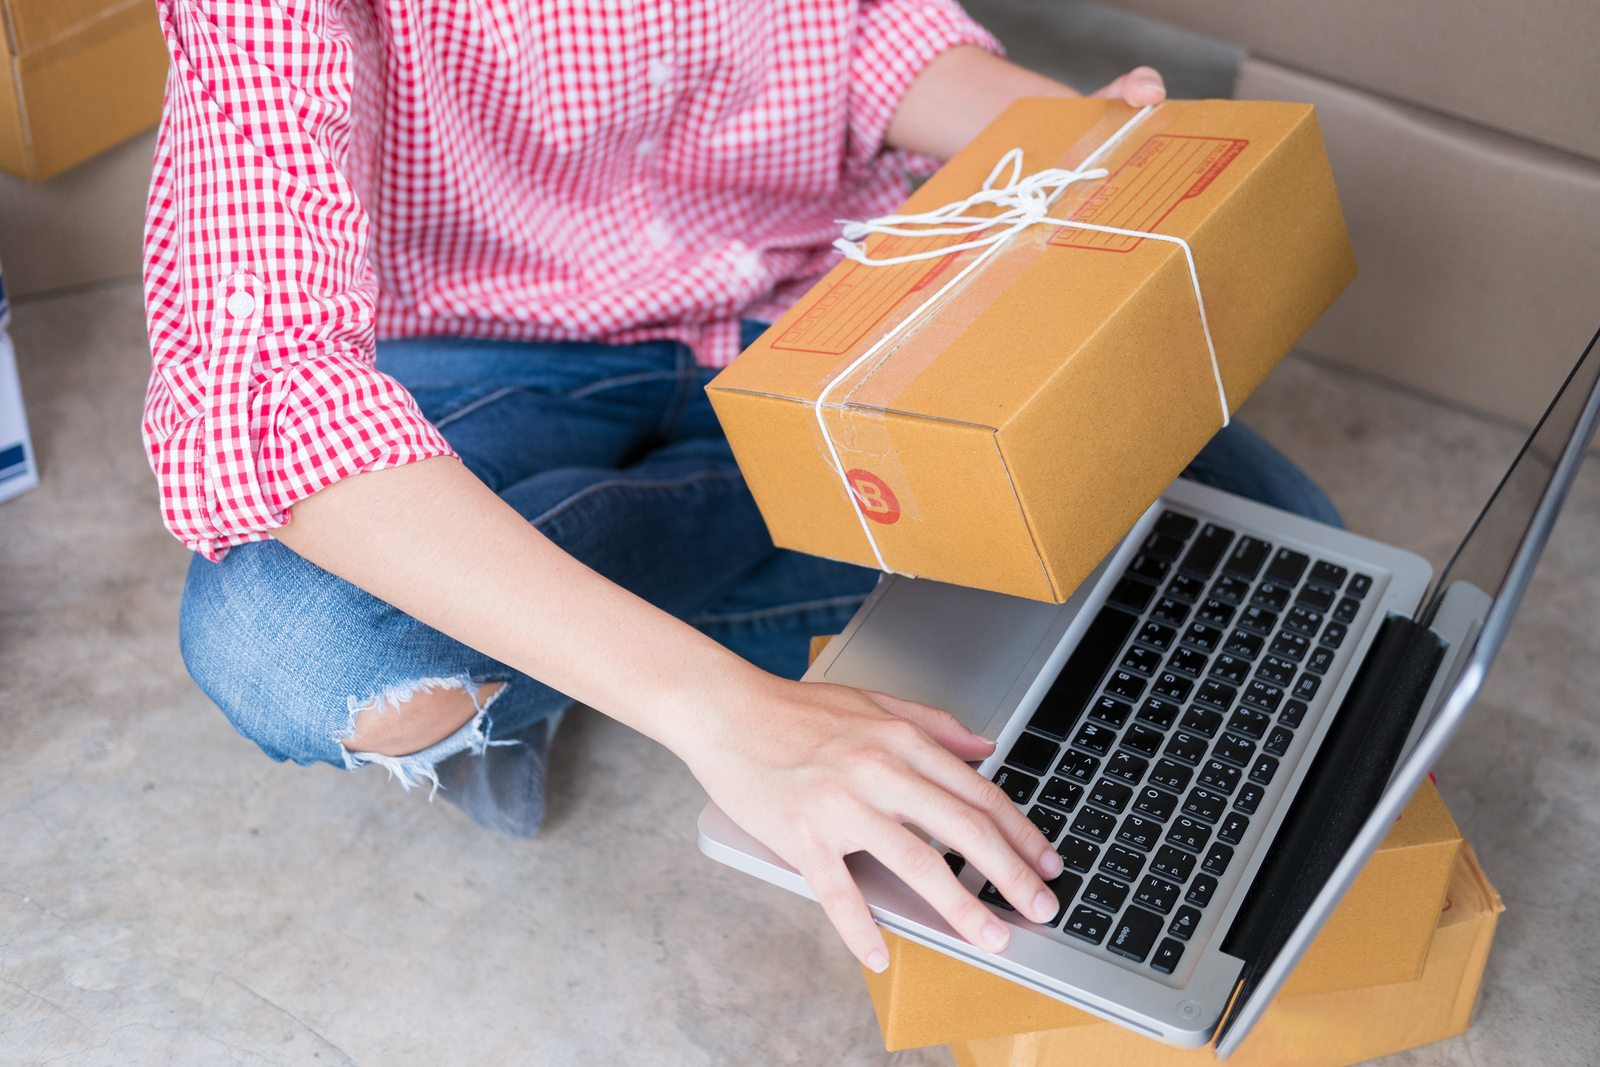 XPS free shipping software